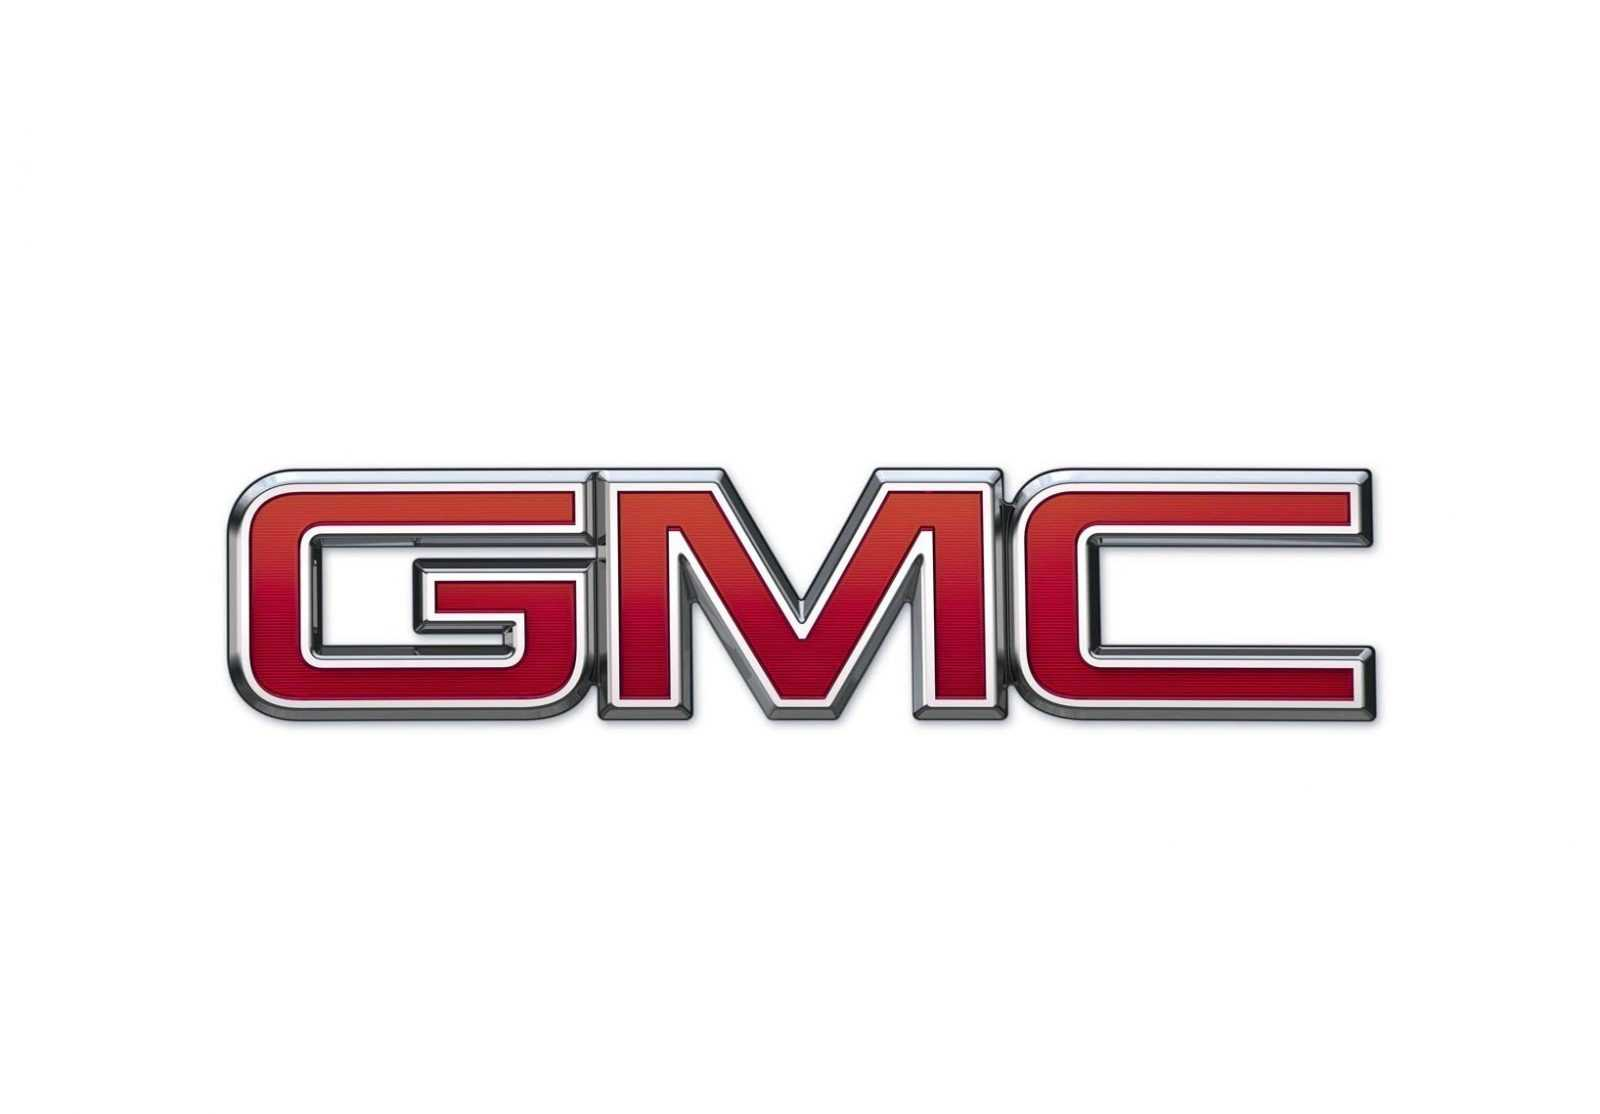 Pre-Owned GMC Cars for Sale in St. Charles